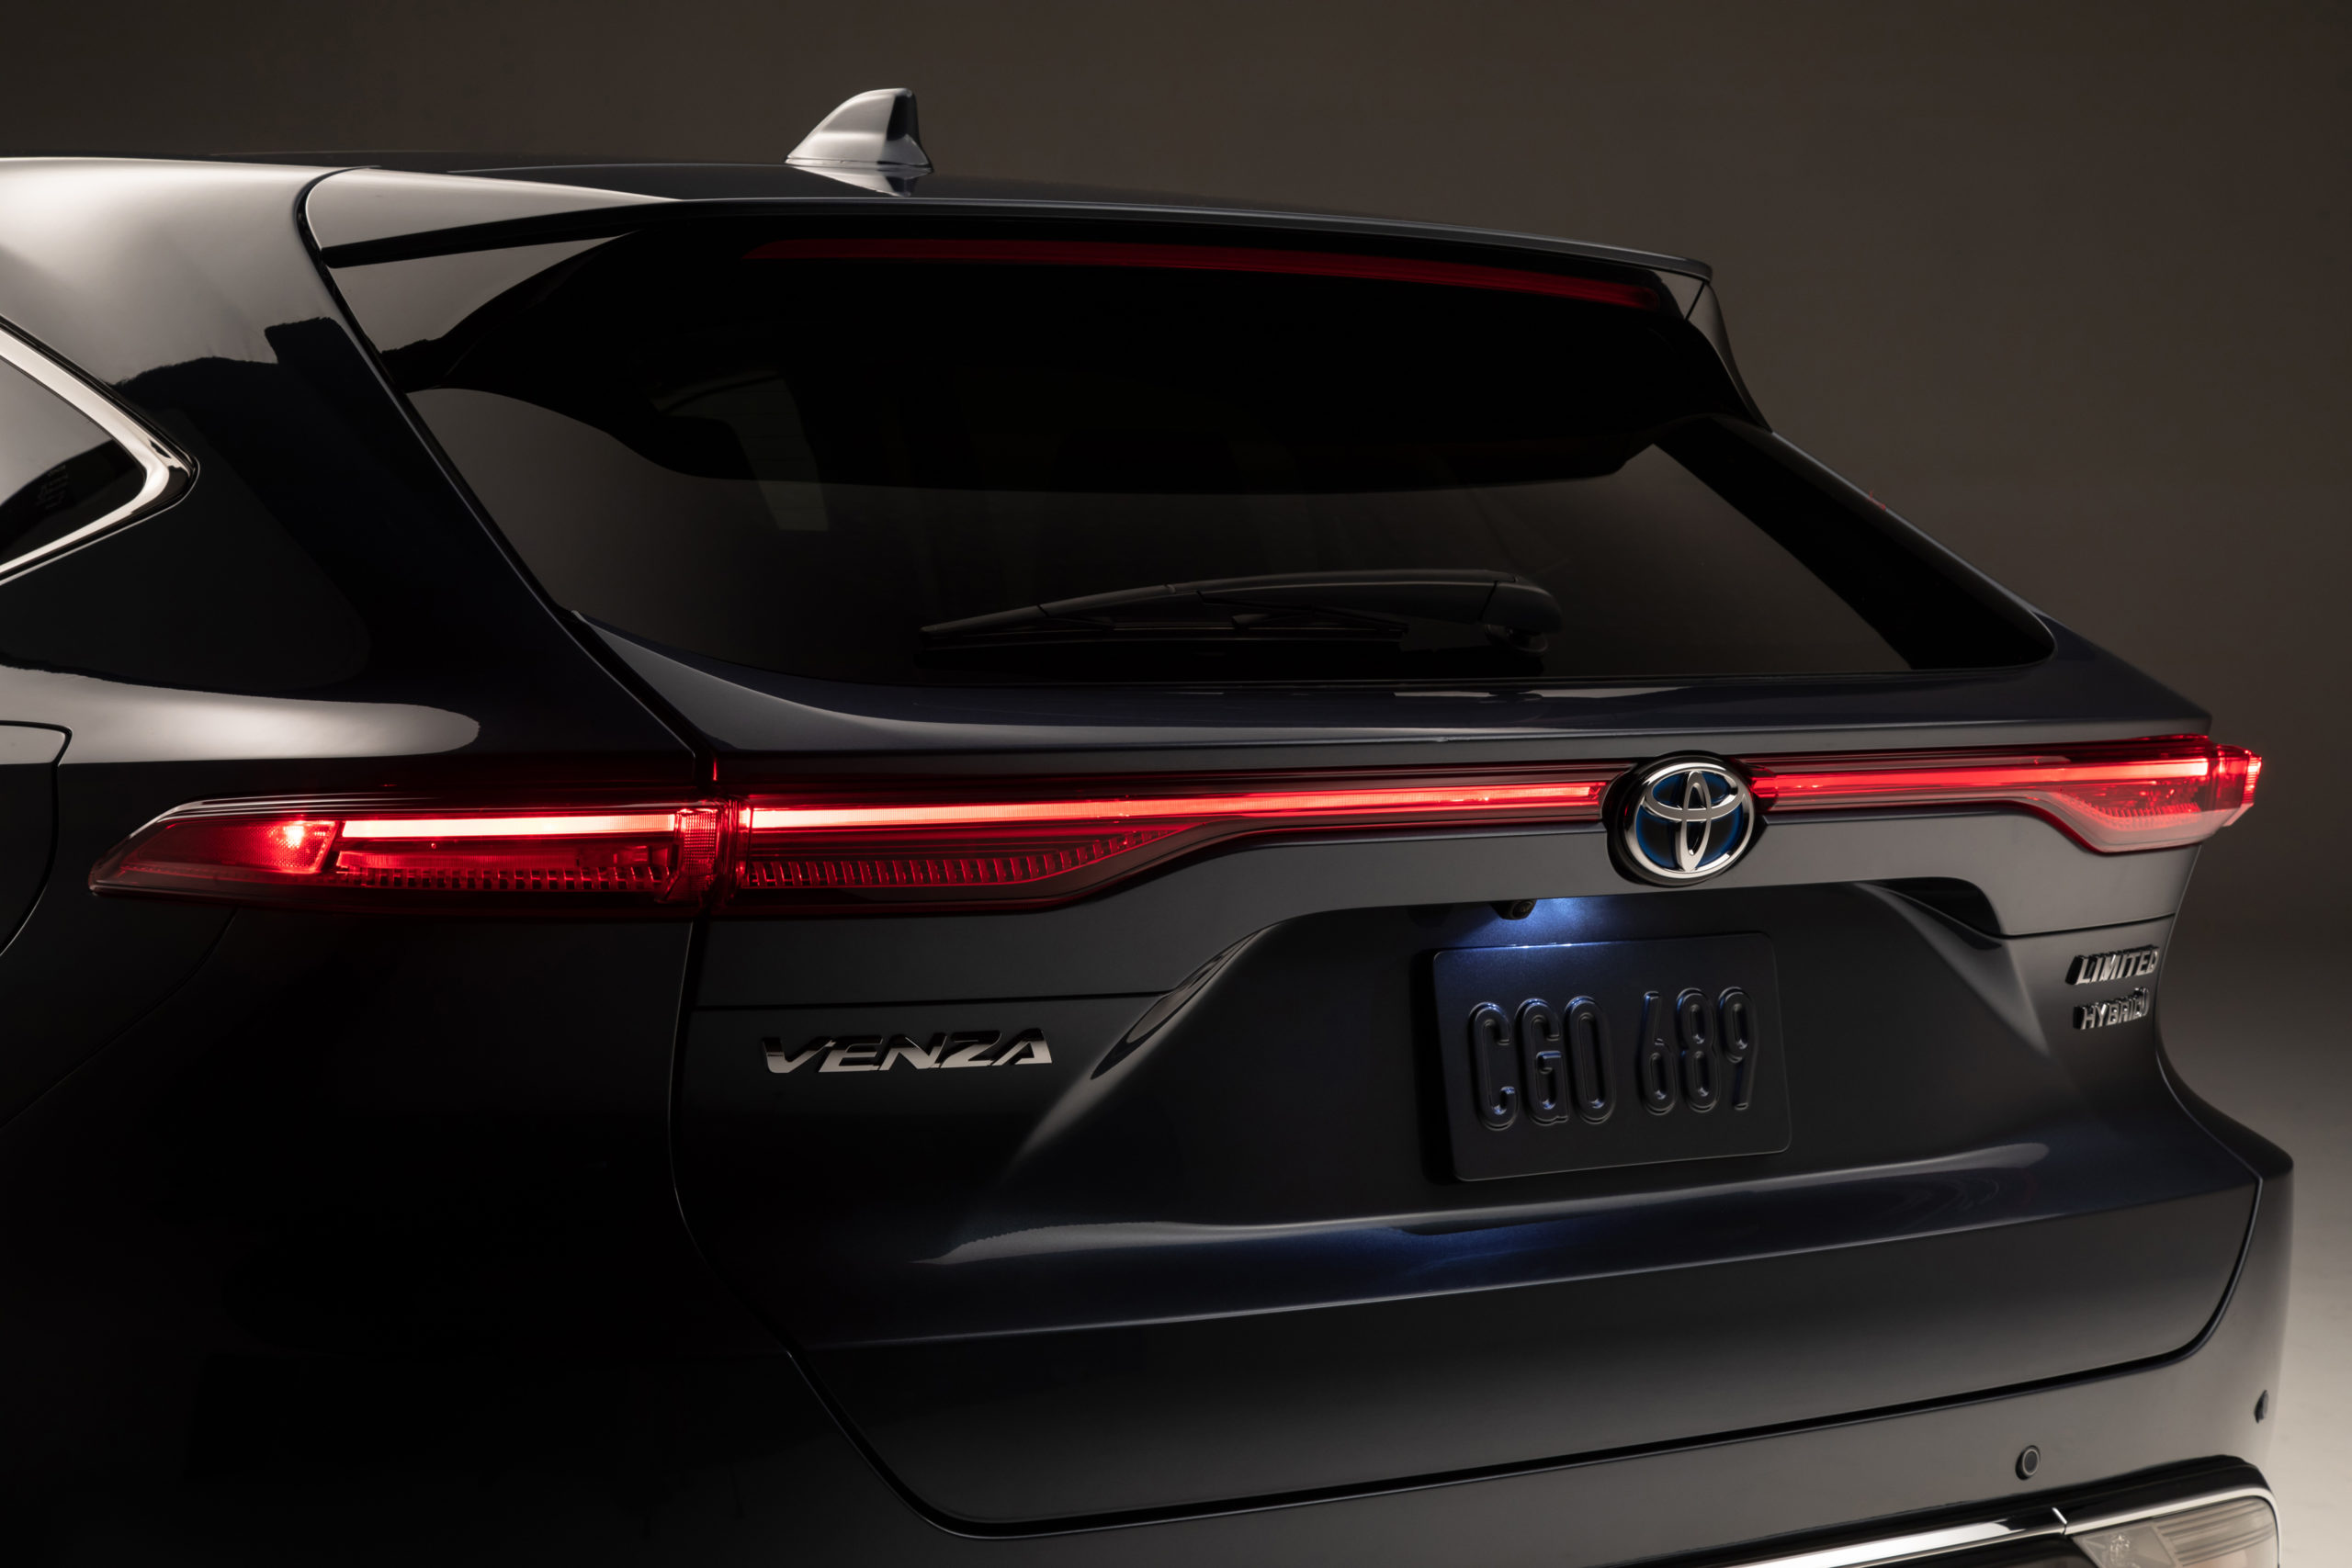 Meet The All-New 2021 Toyota Venza (Photos) - Brand Spur